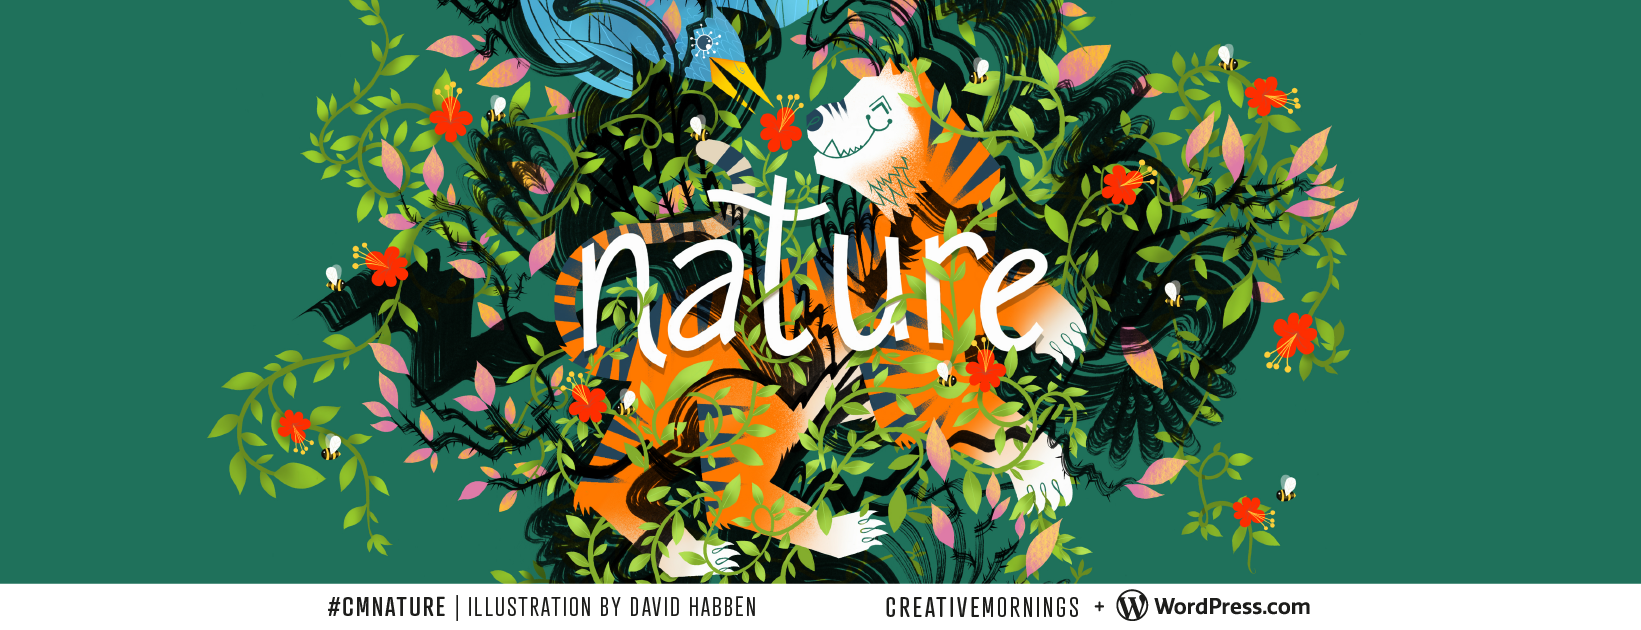 CreativeMornings Timișoara | Alexandru Ciobotă on Nature